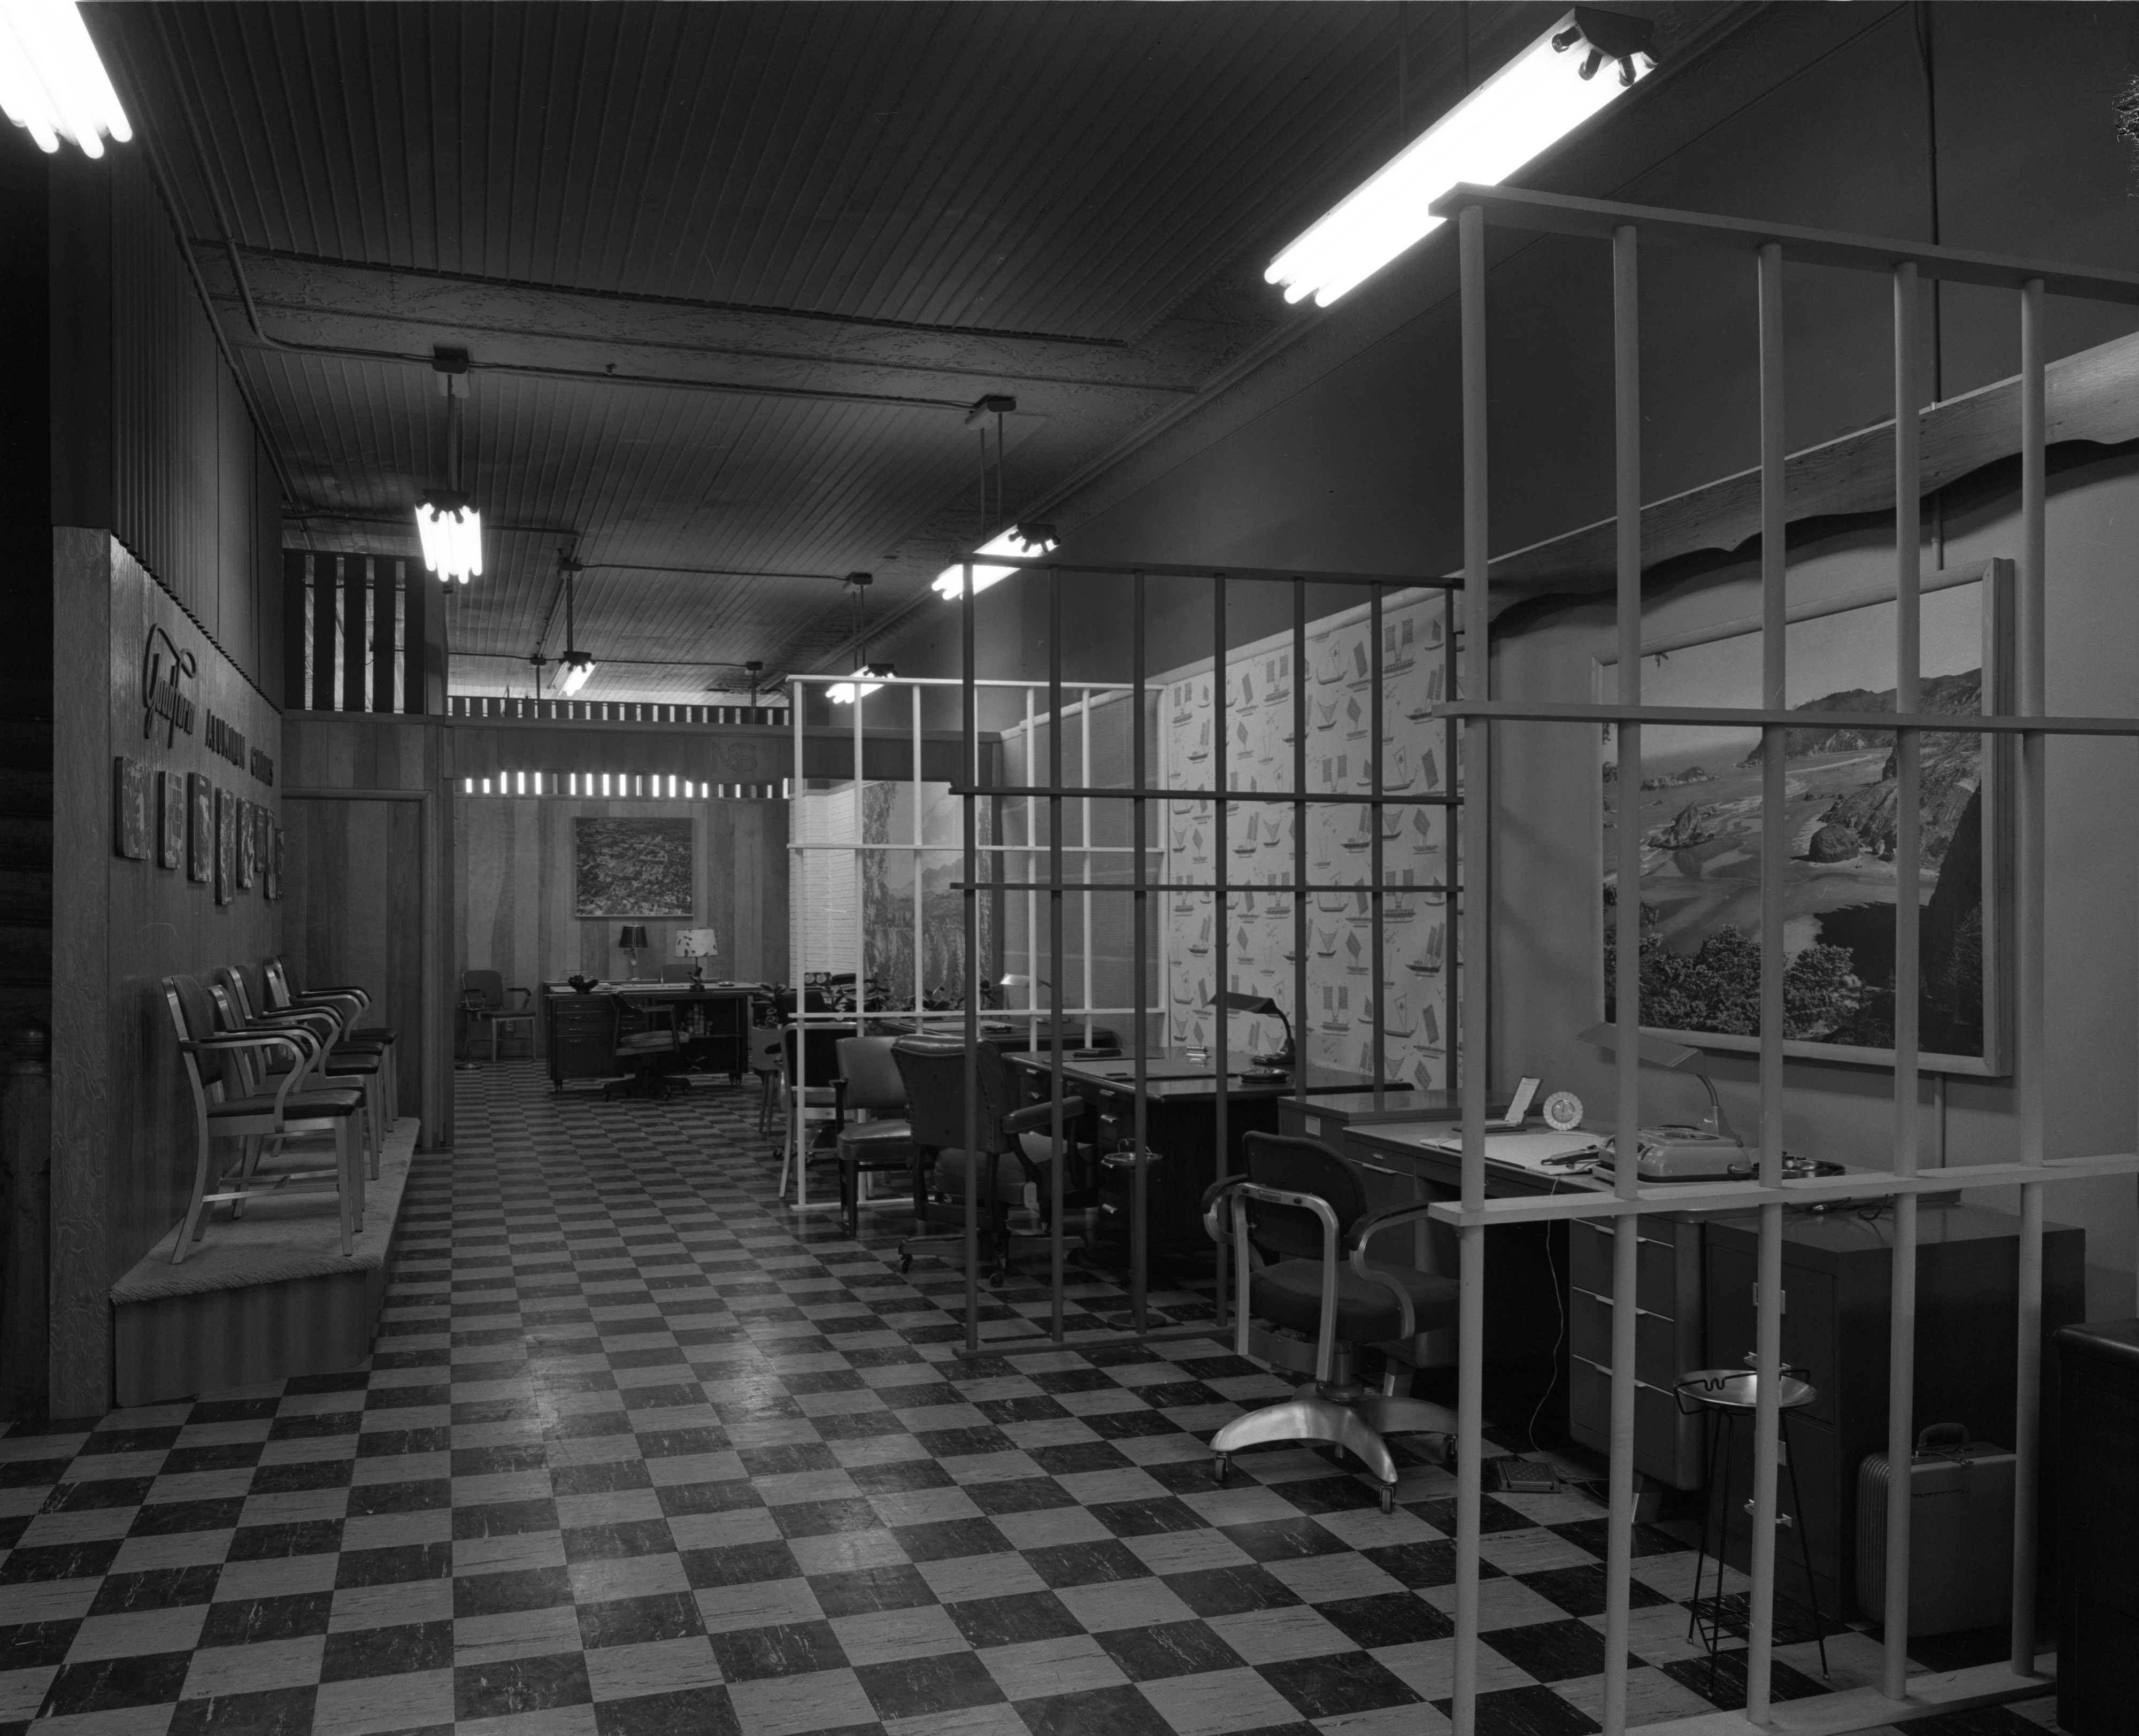 Second Floor Remodel At Mayer-Schairer, March 1958 image